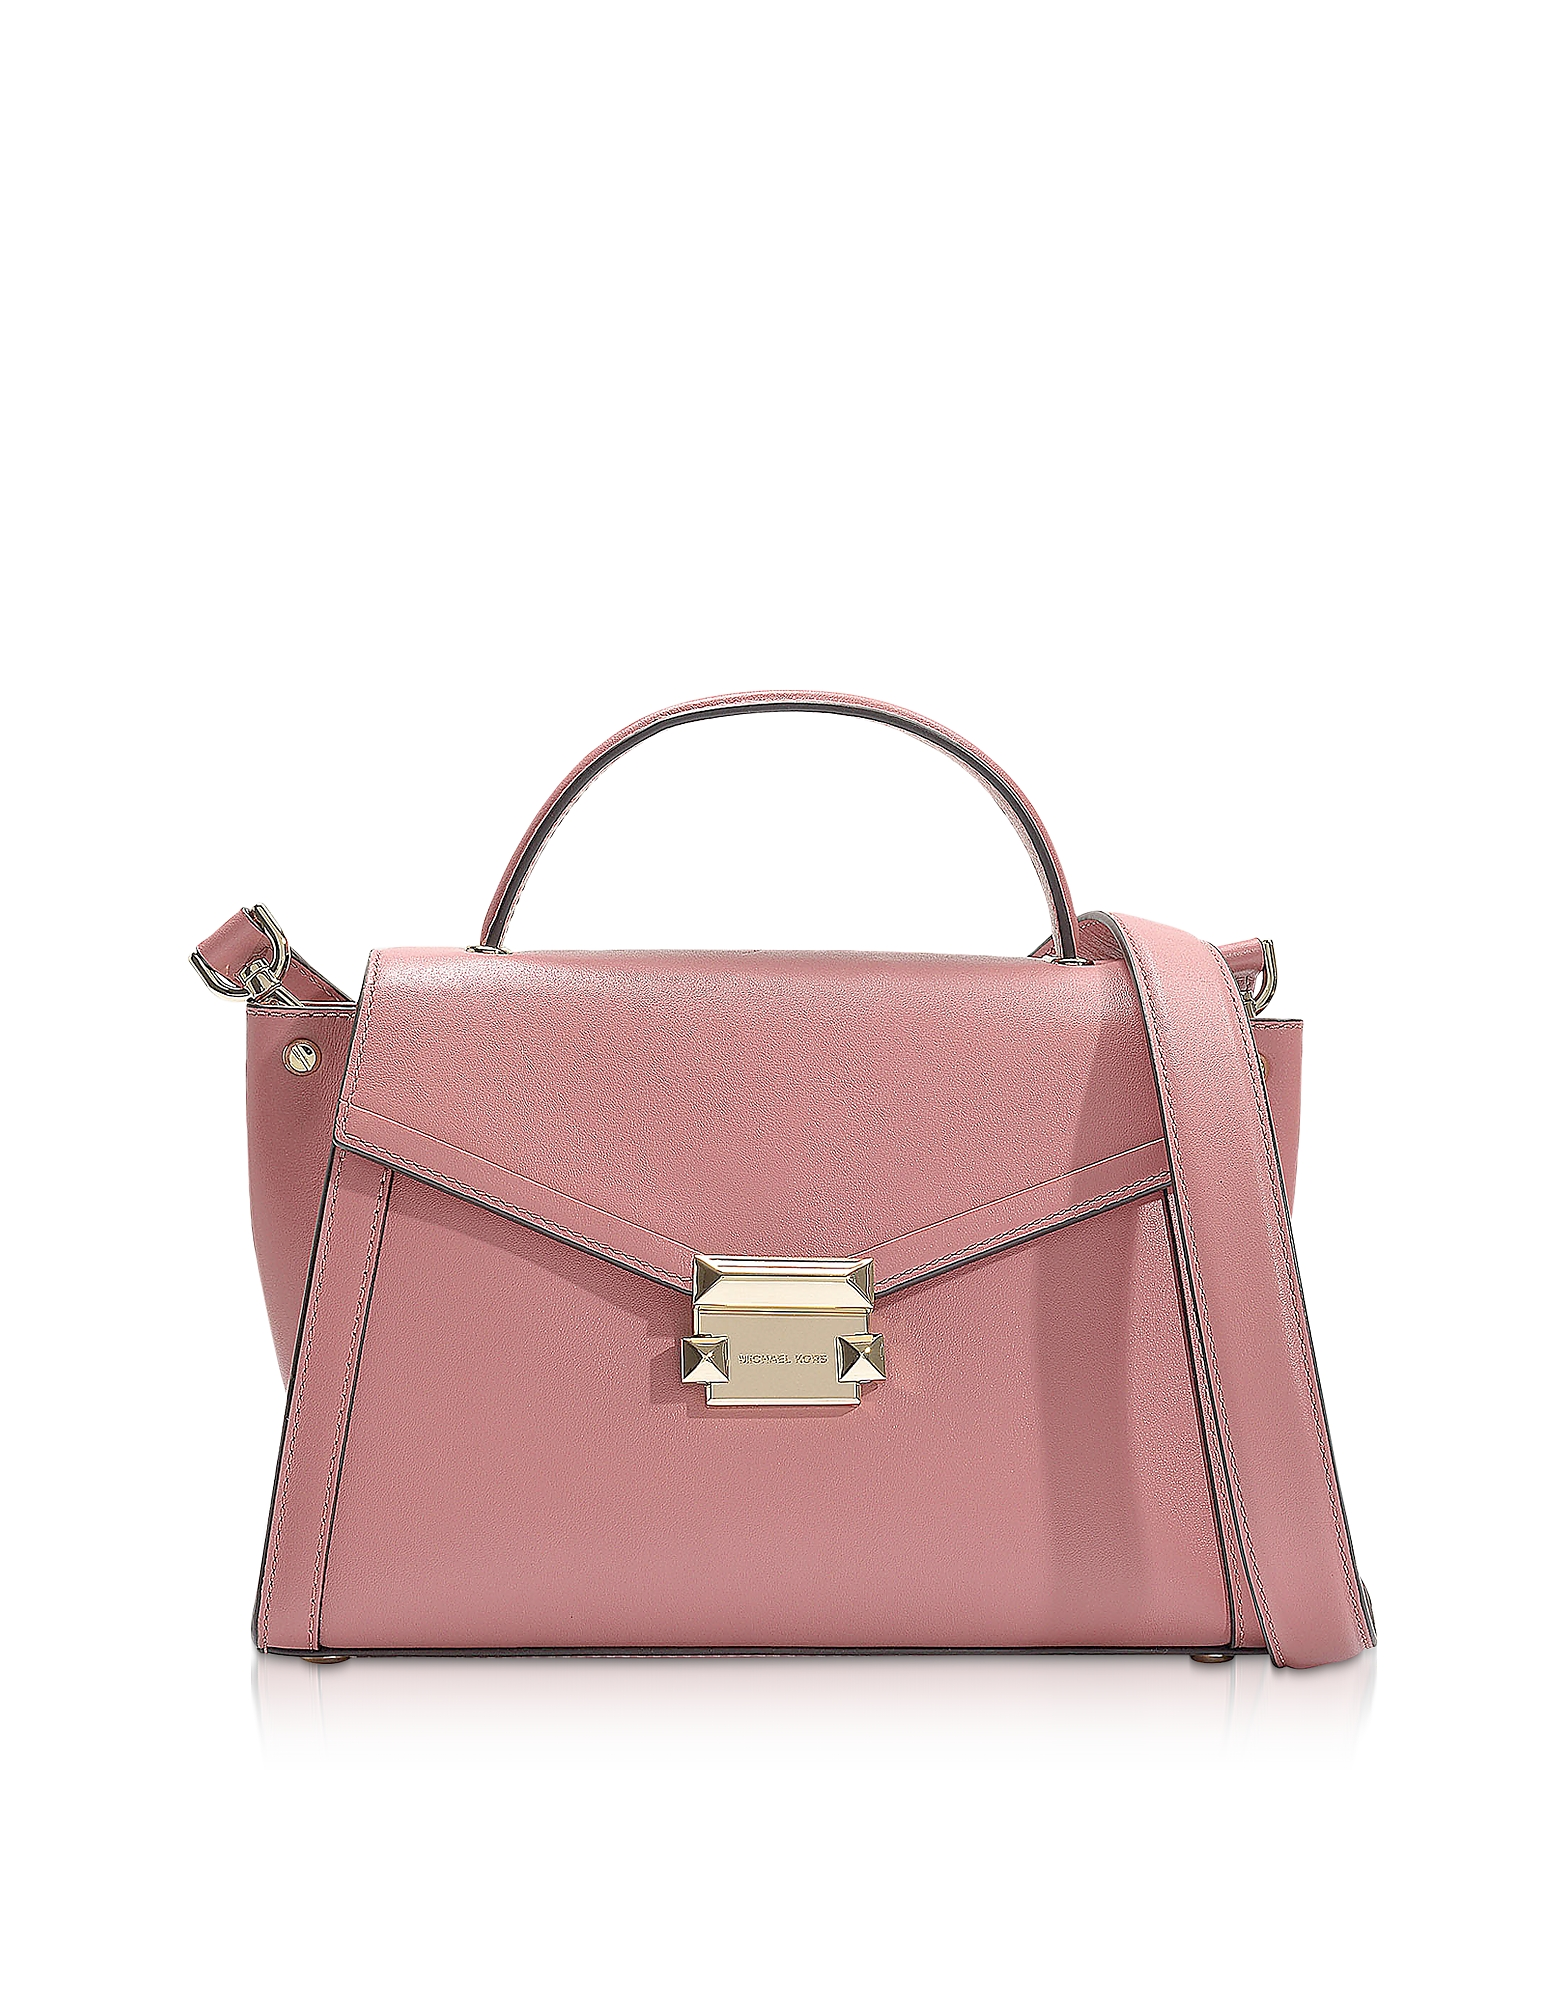 Rose Leather Whitney Medium Top-Handle Satchel Bag